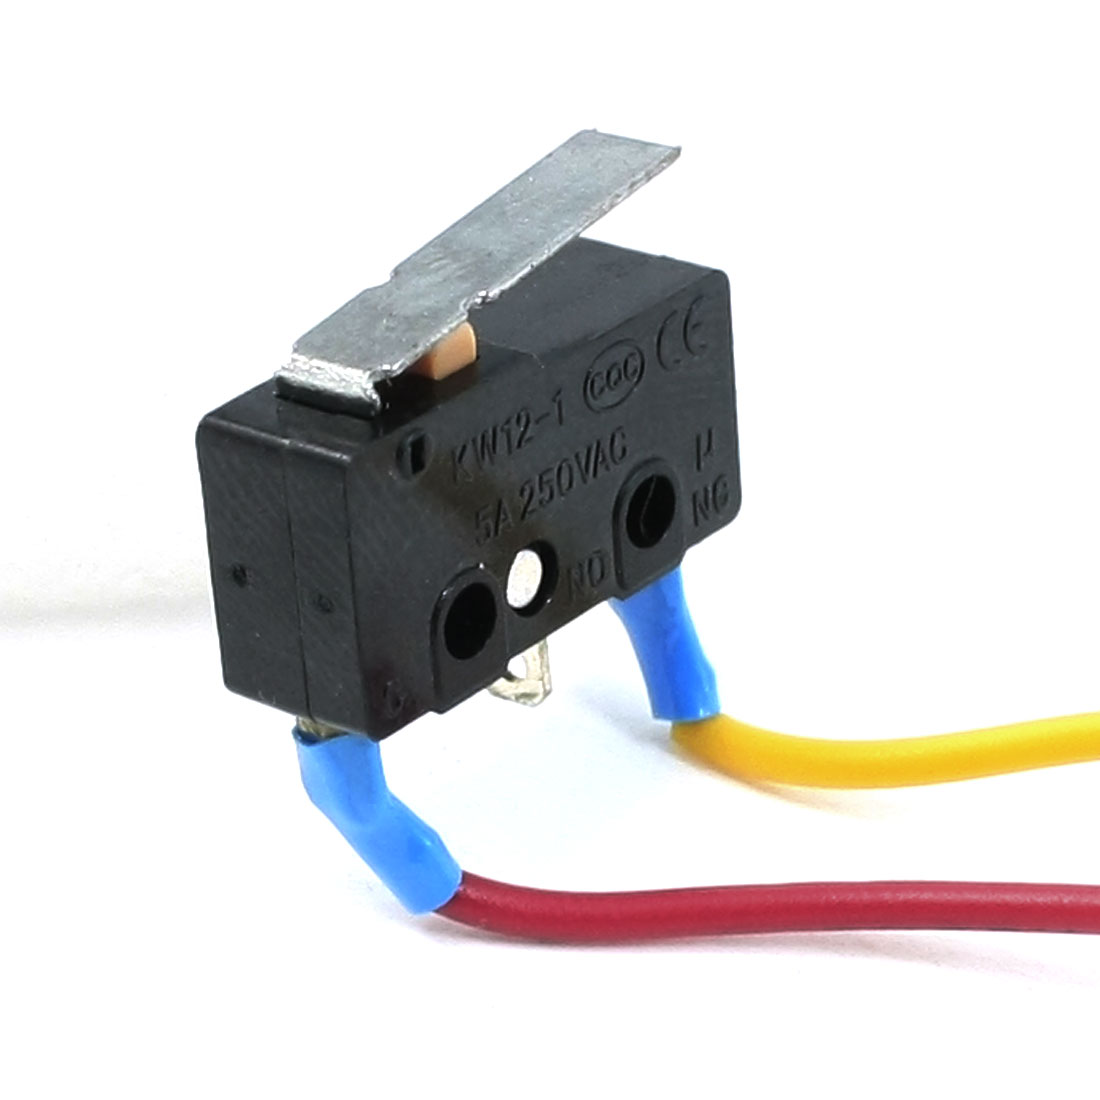 AC 250V 5A Momentary Ignition Hinge Lever Microswitch w Cable